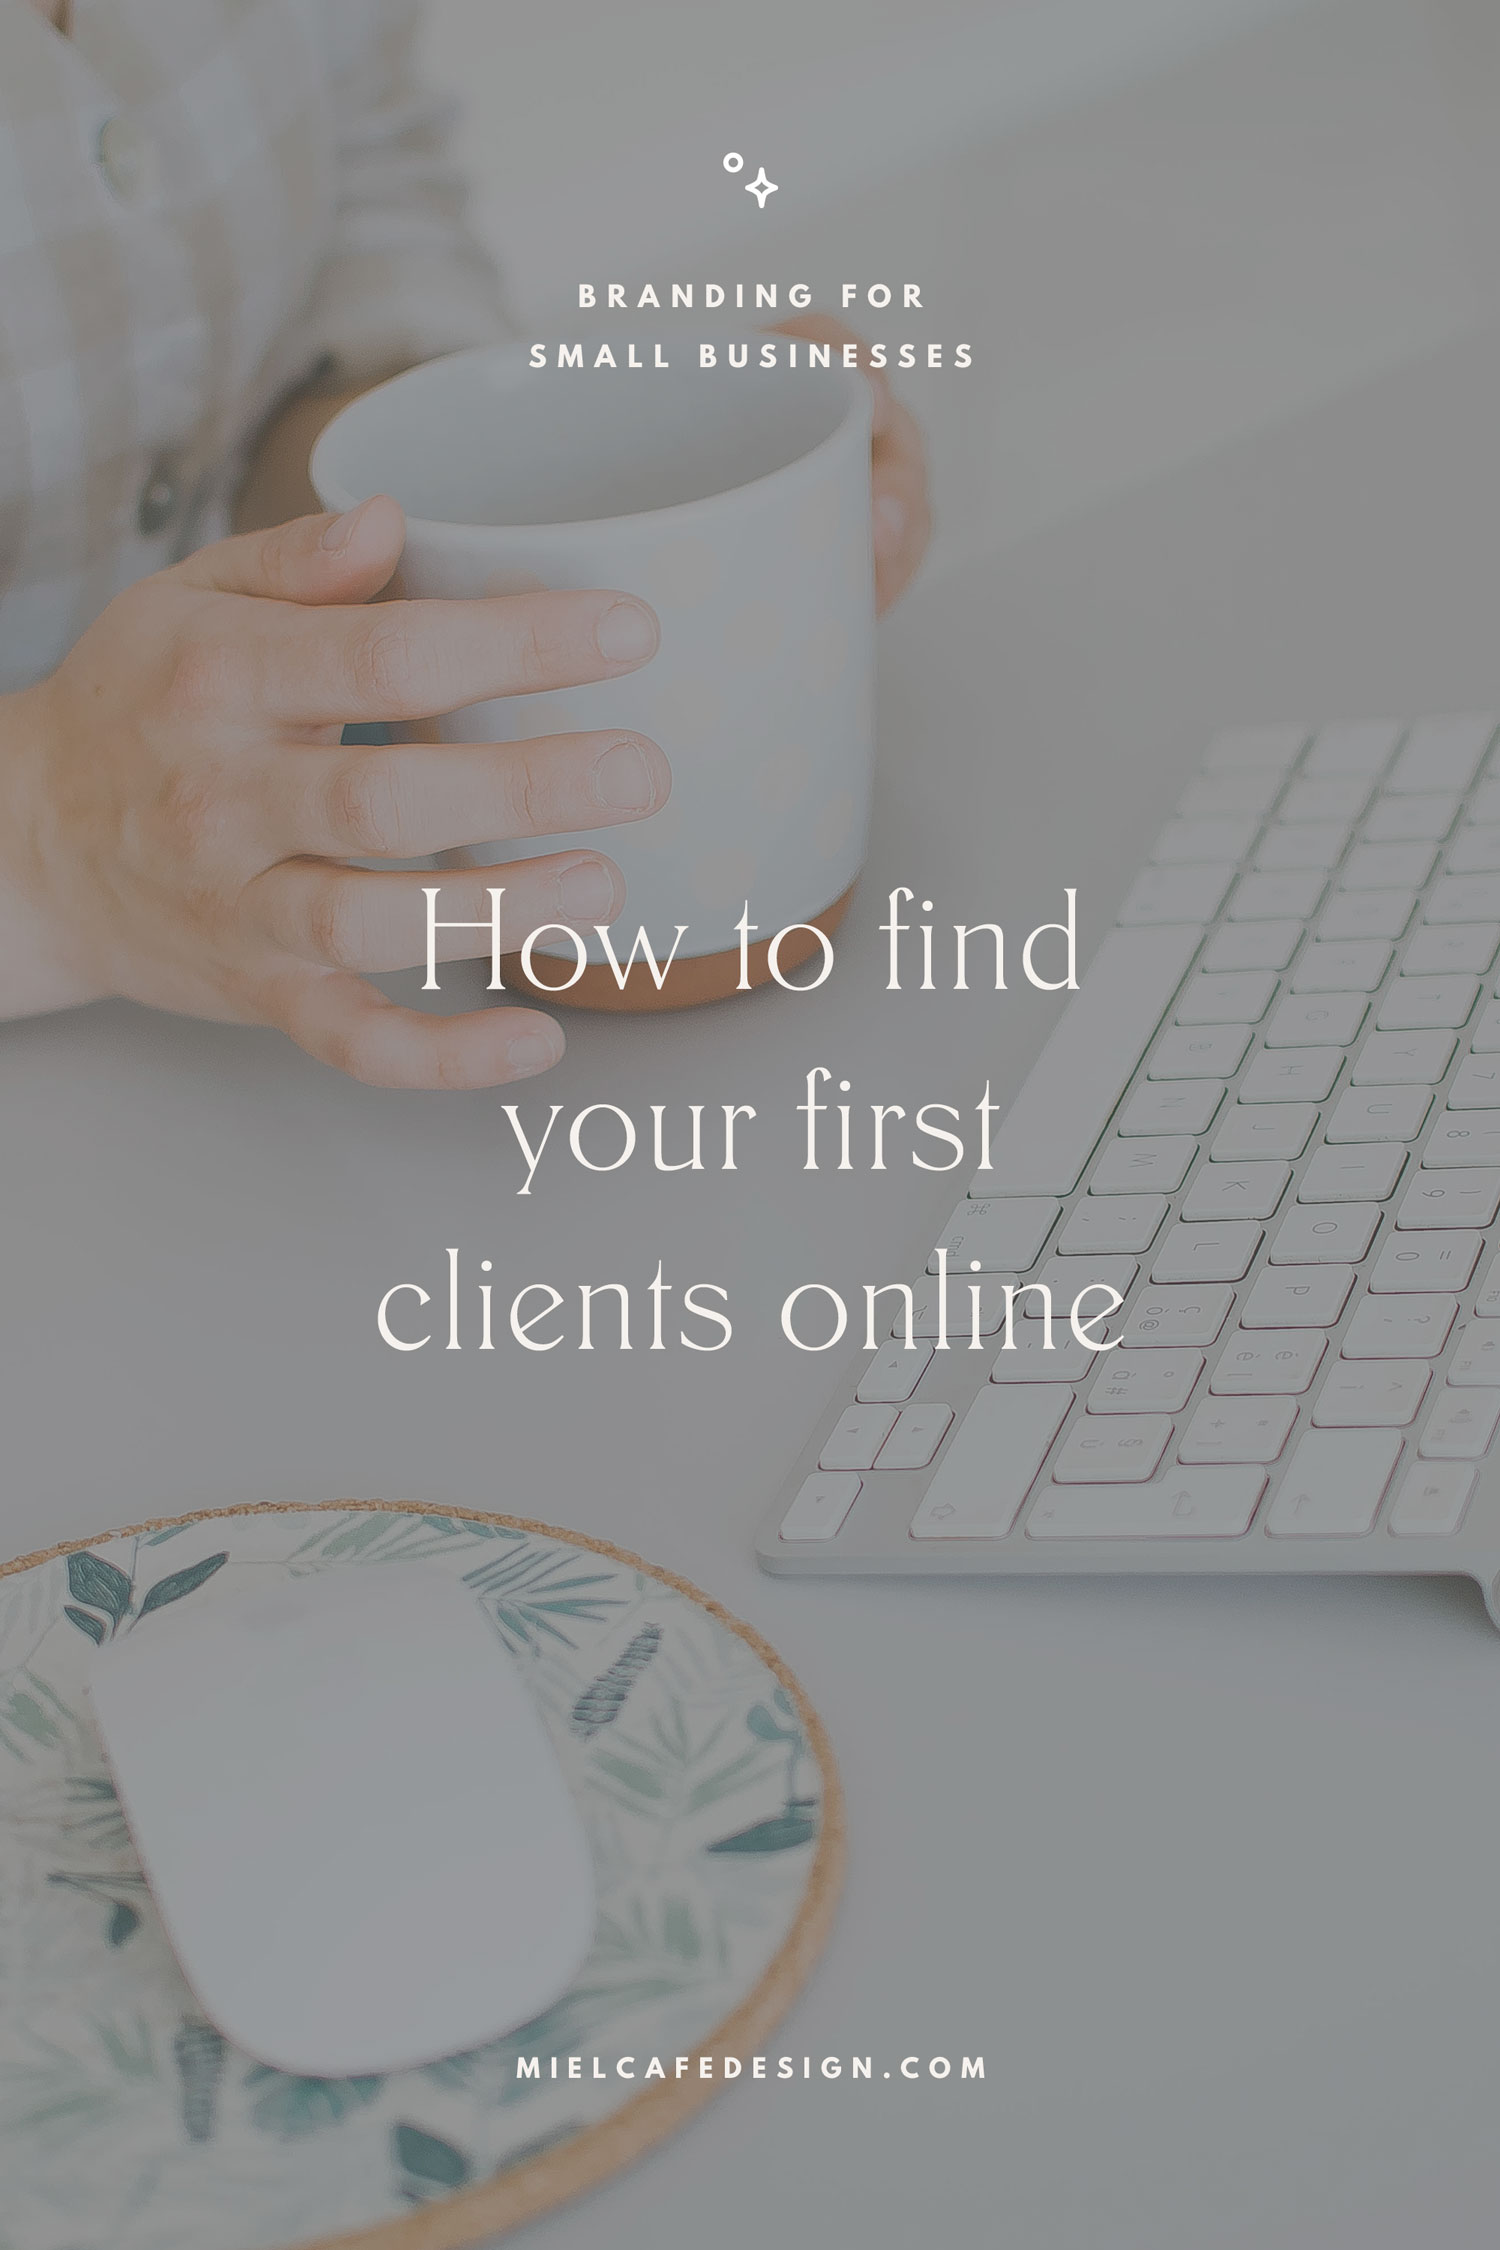 Branding for small businesses: how to find clients online (or, better, get found by them)